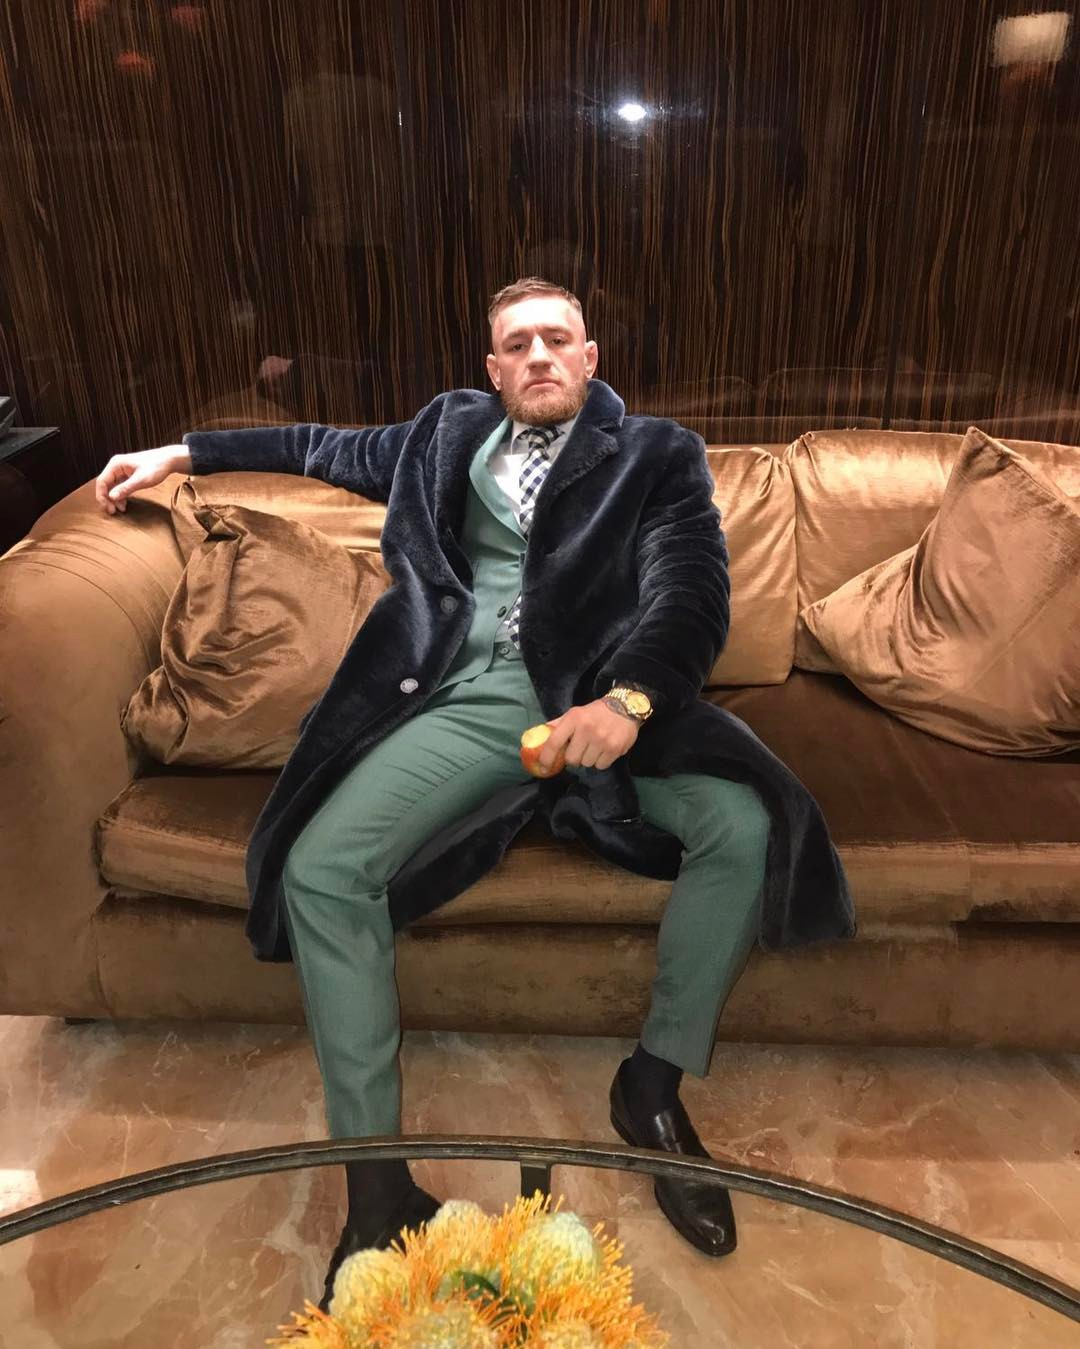 SPOTTED: Conor McGregor In Louis Vuitton Fur Coat And David August Suit